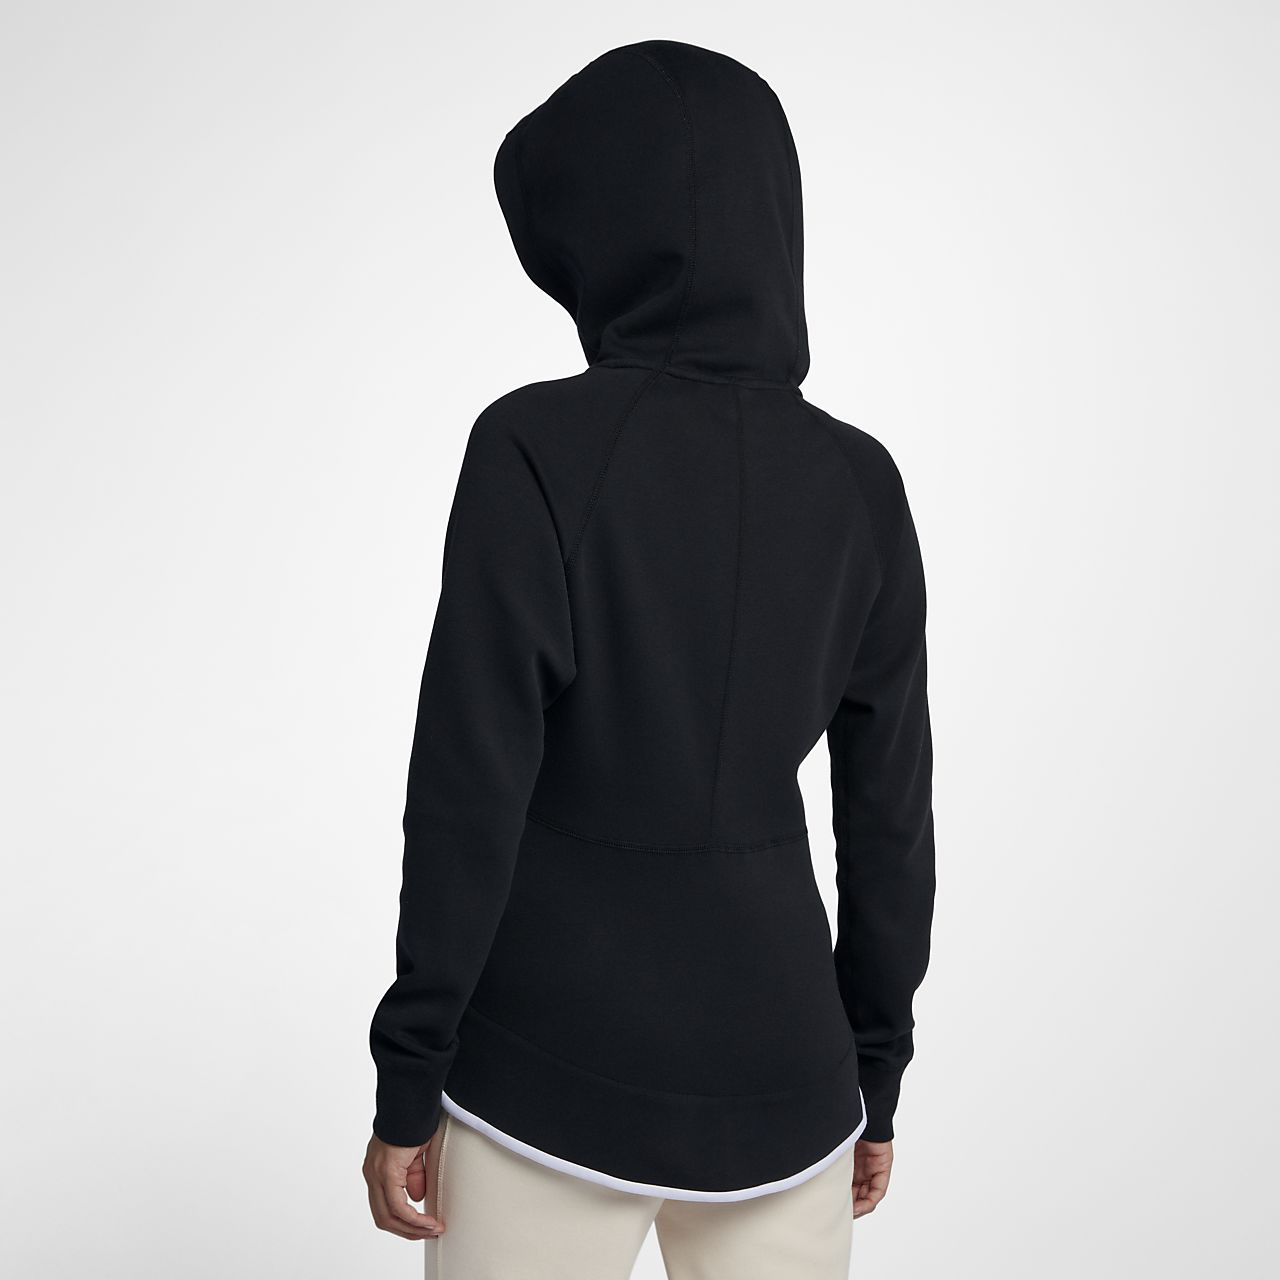 06b44f8c Nike Sportswear Tech Fleece Windrunner Women's Full-Zip Hoodie. Nike ...